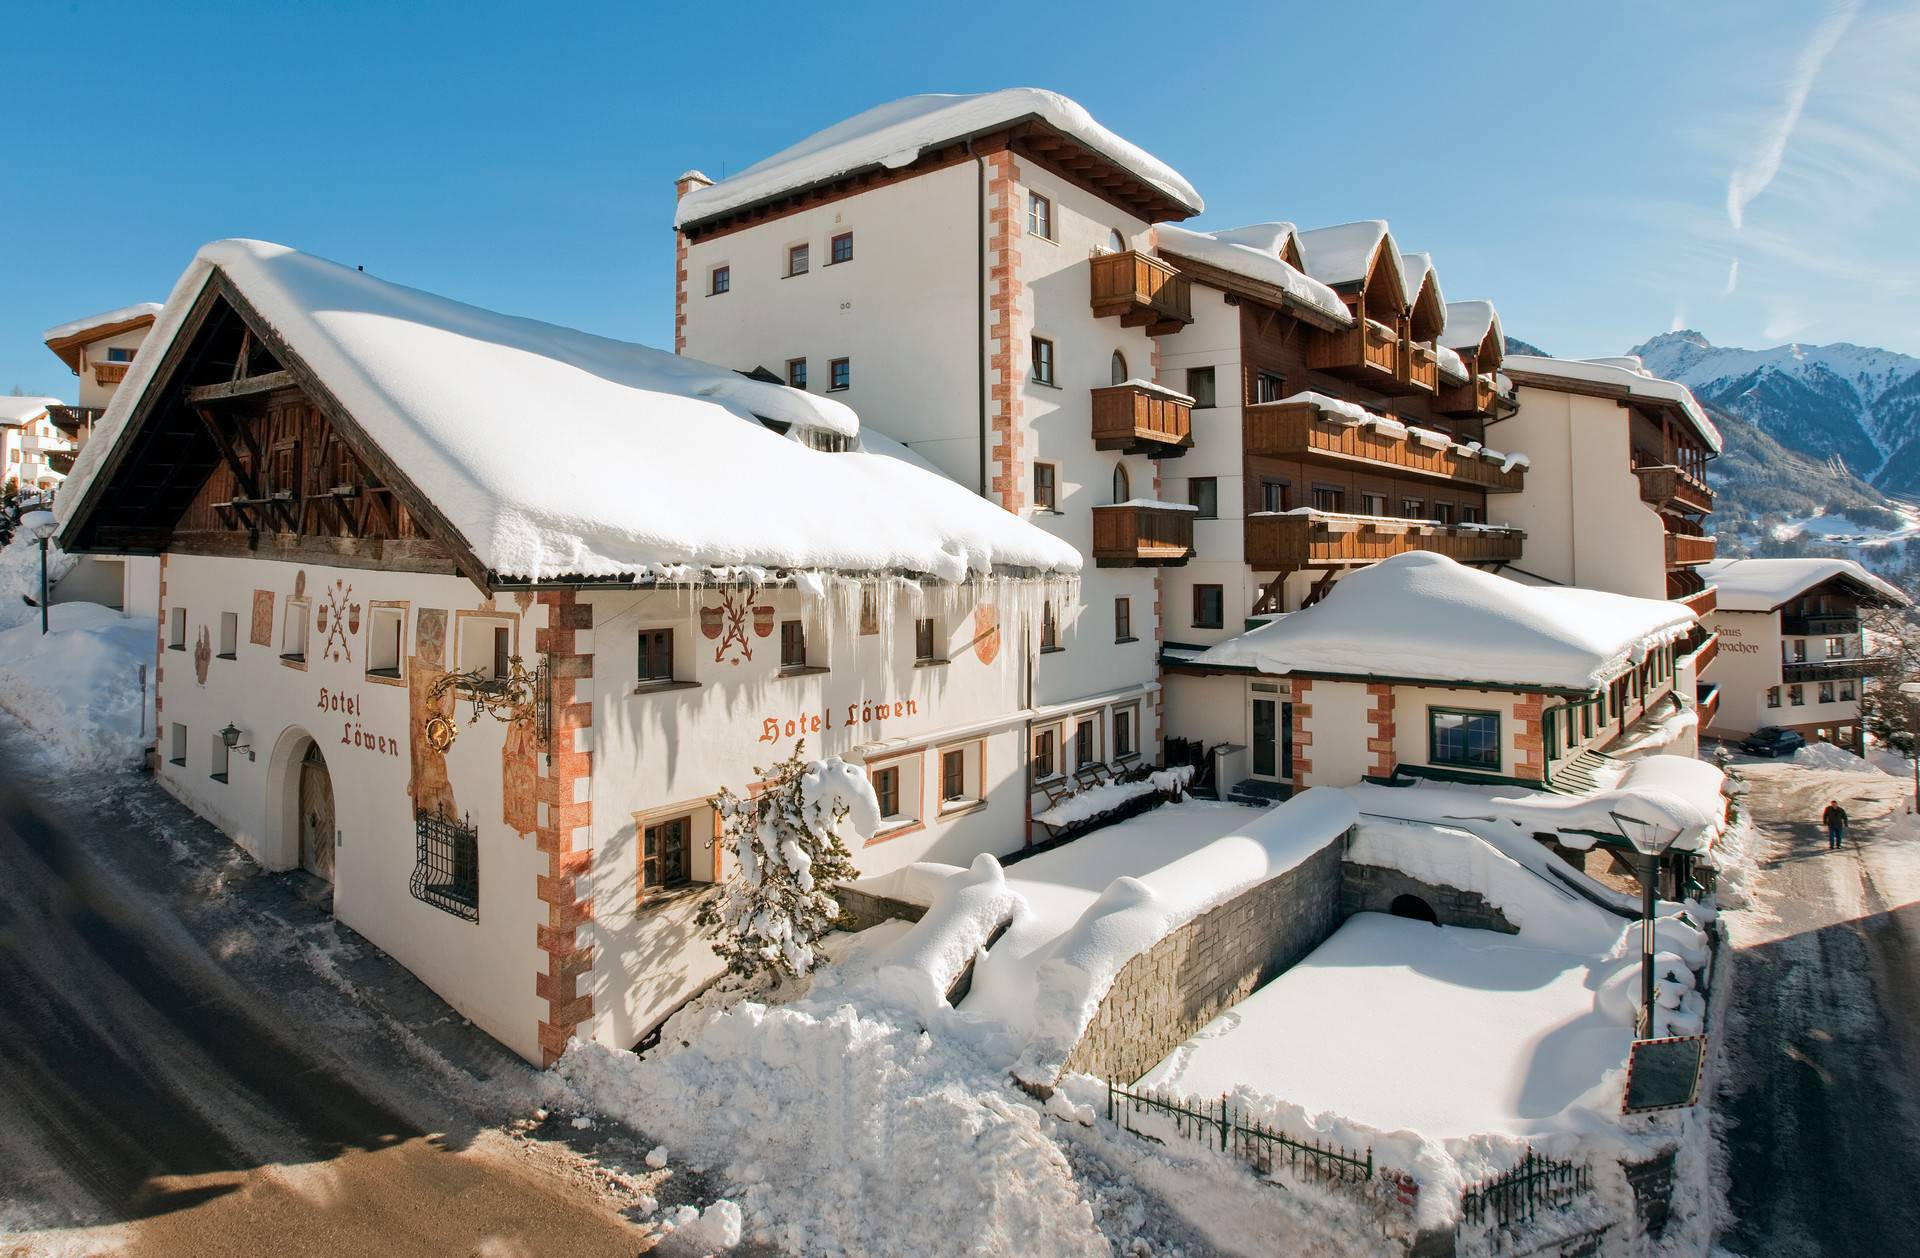 The hotel in winter